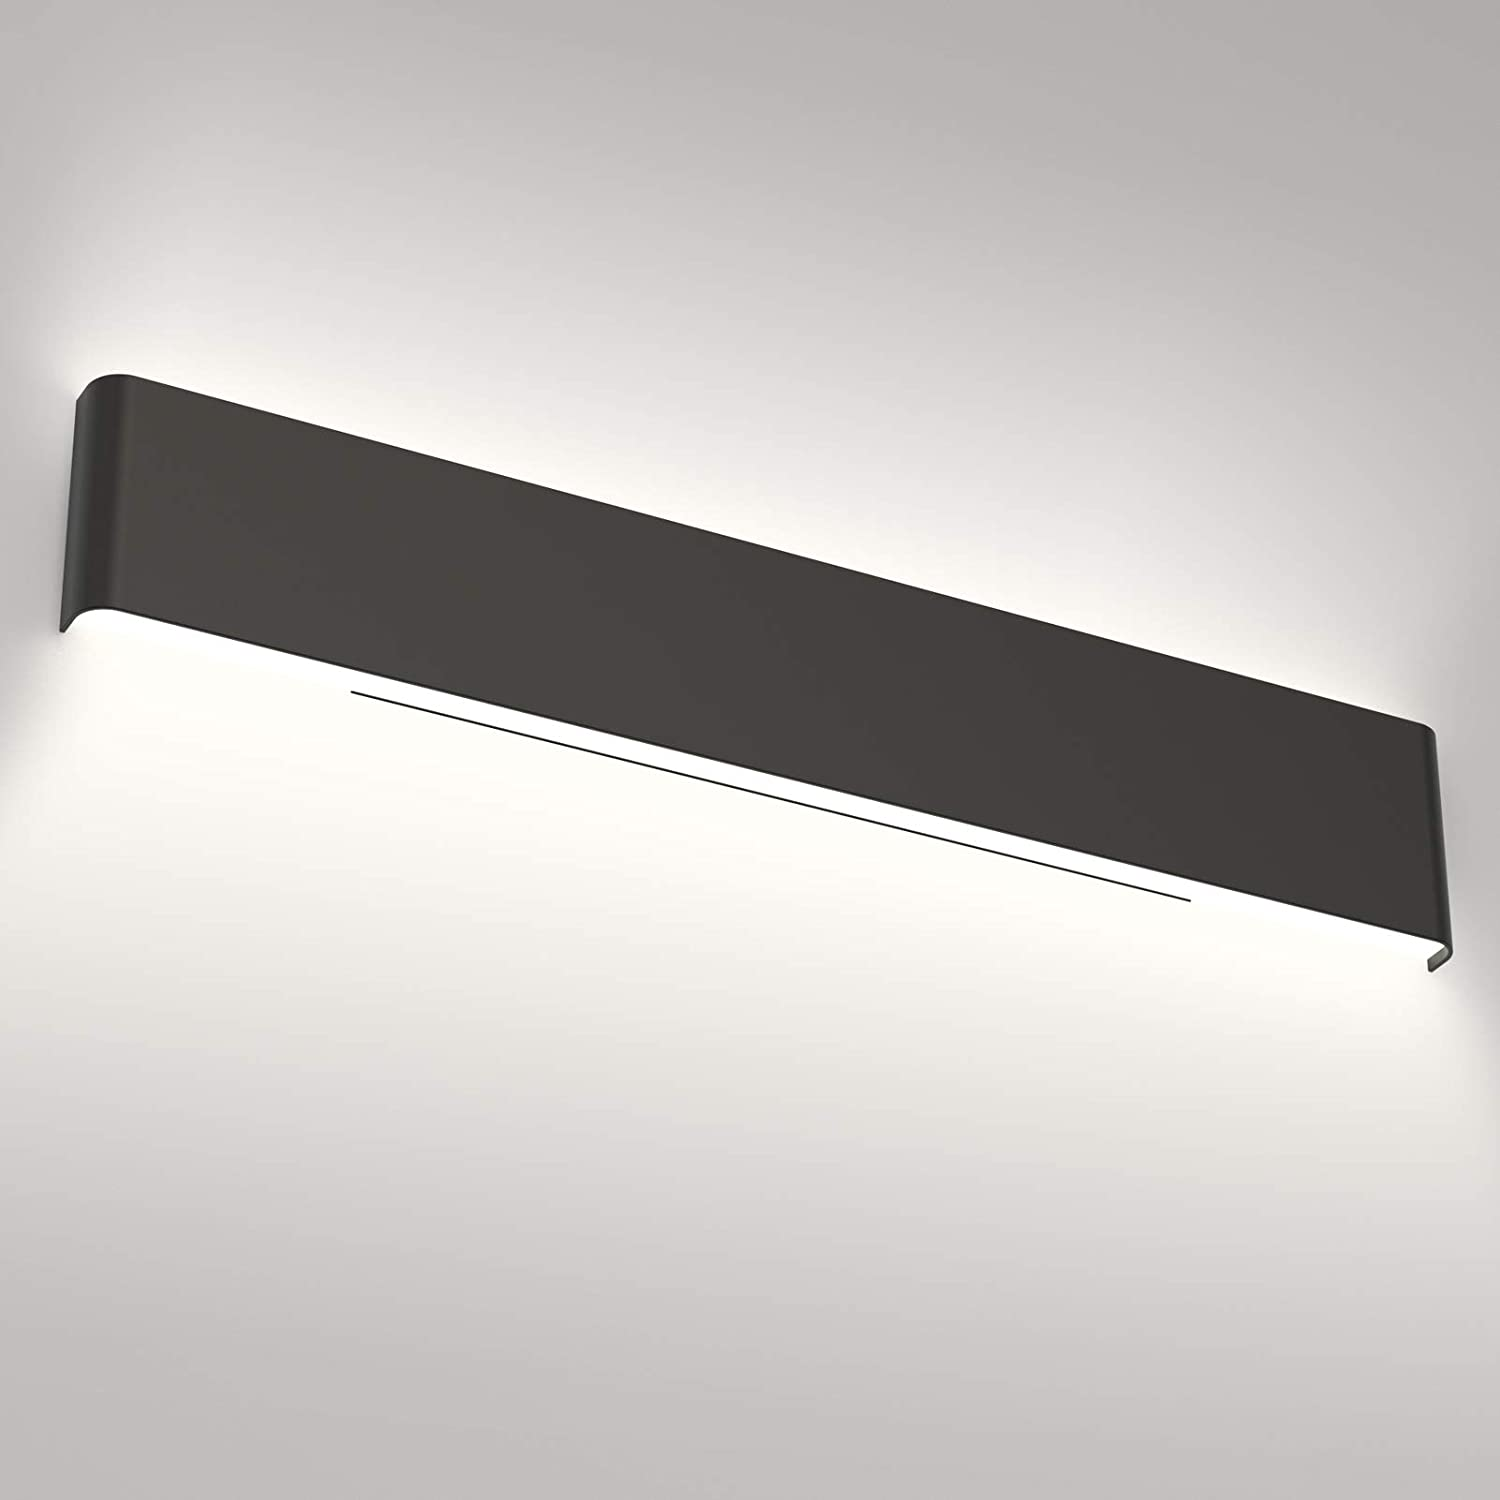 Aipsun 32.6 Rare Challenge the lowest price of Japan ☆ inch Modern Black Light Ba Fixtures LED Vanity